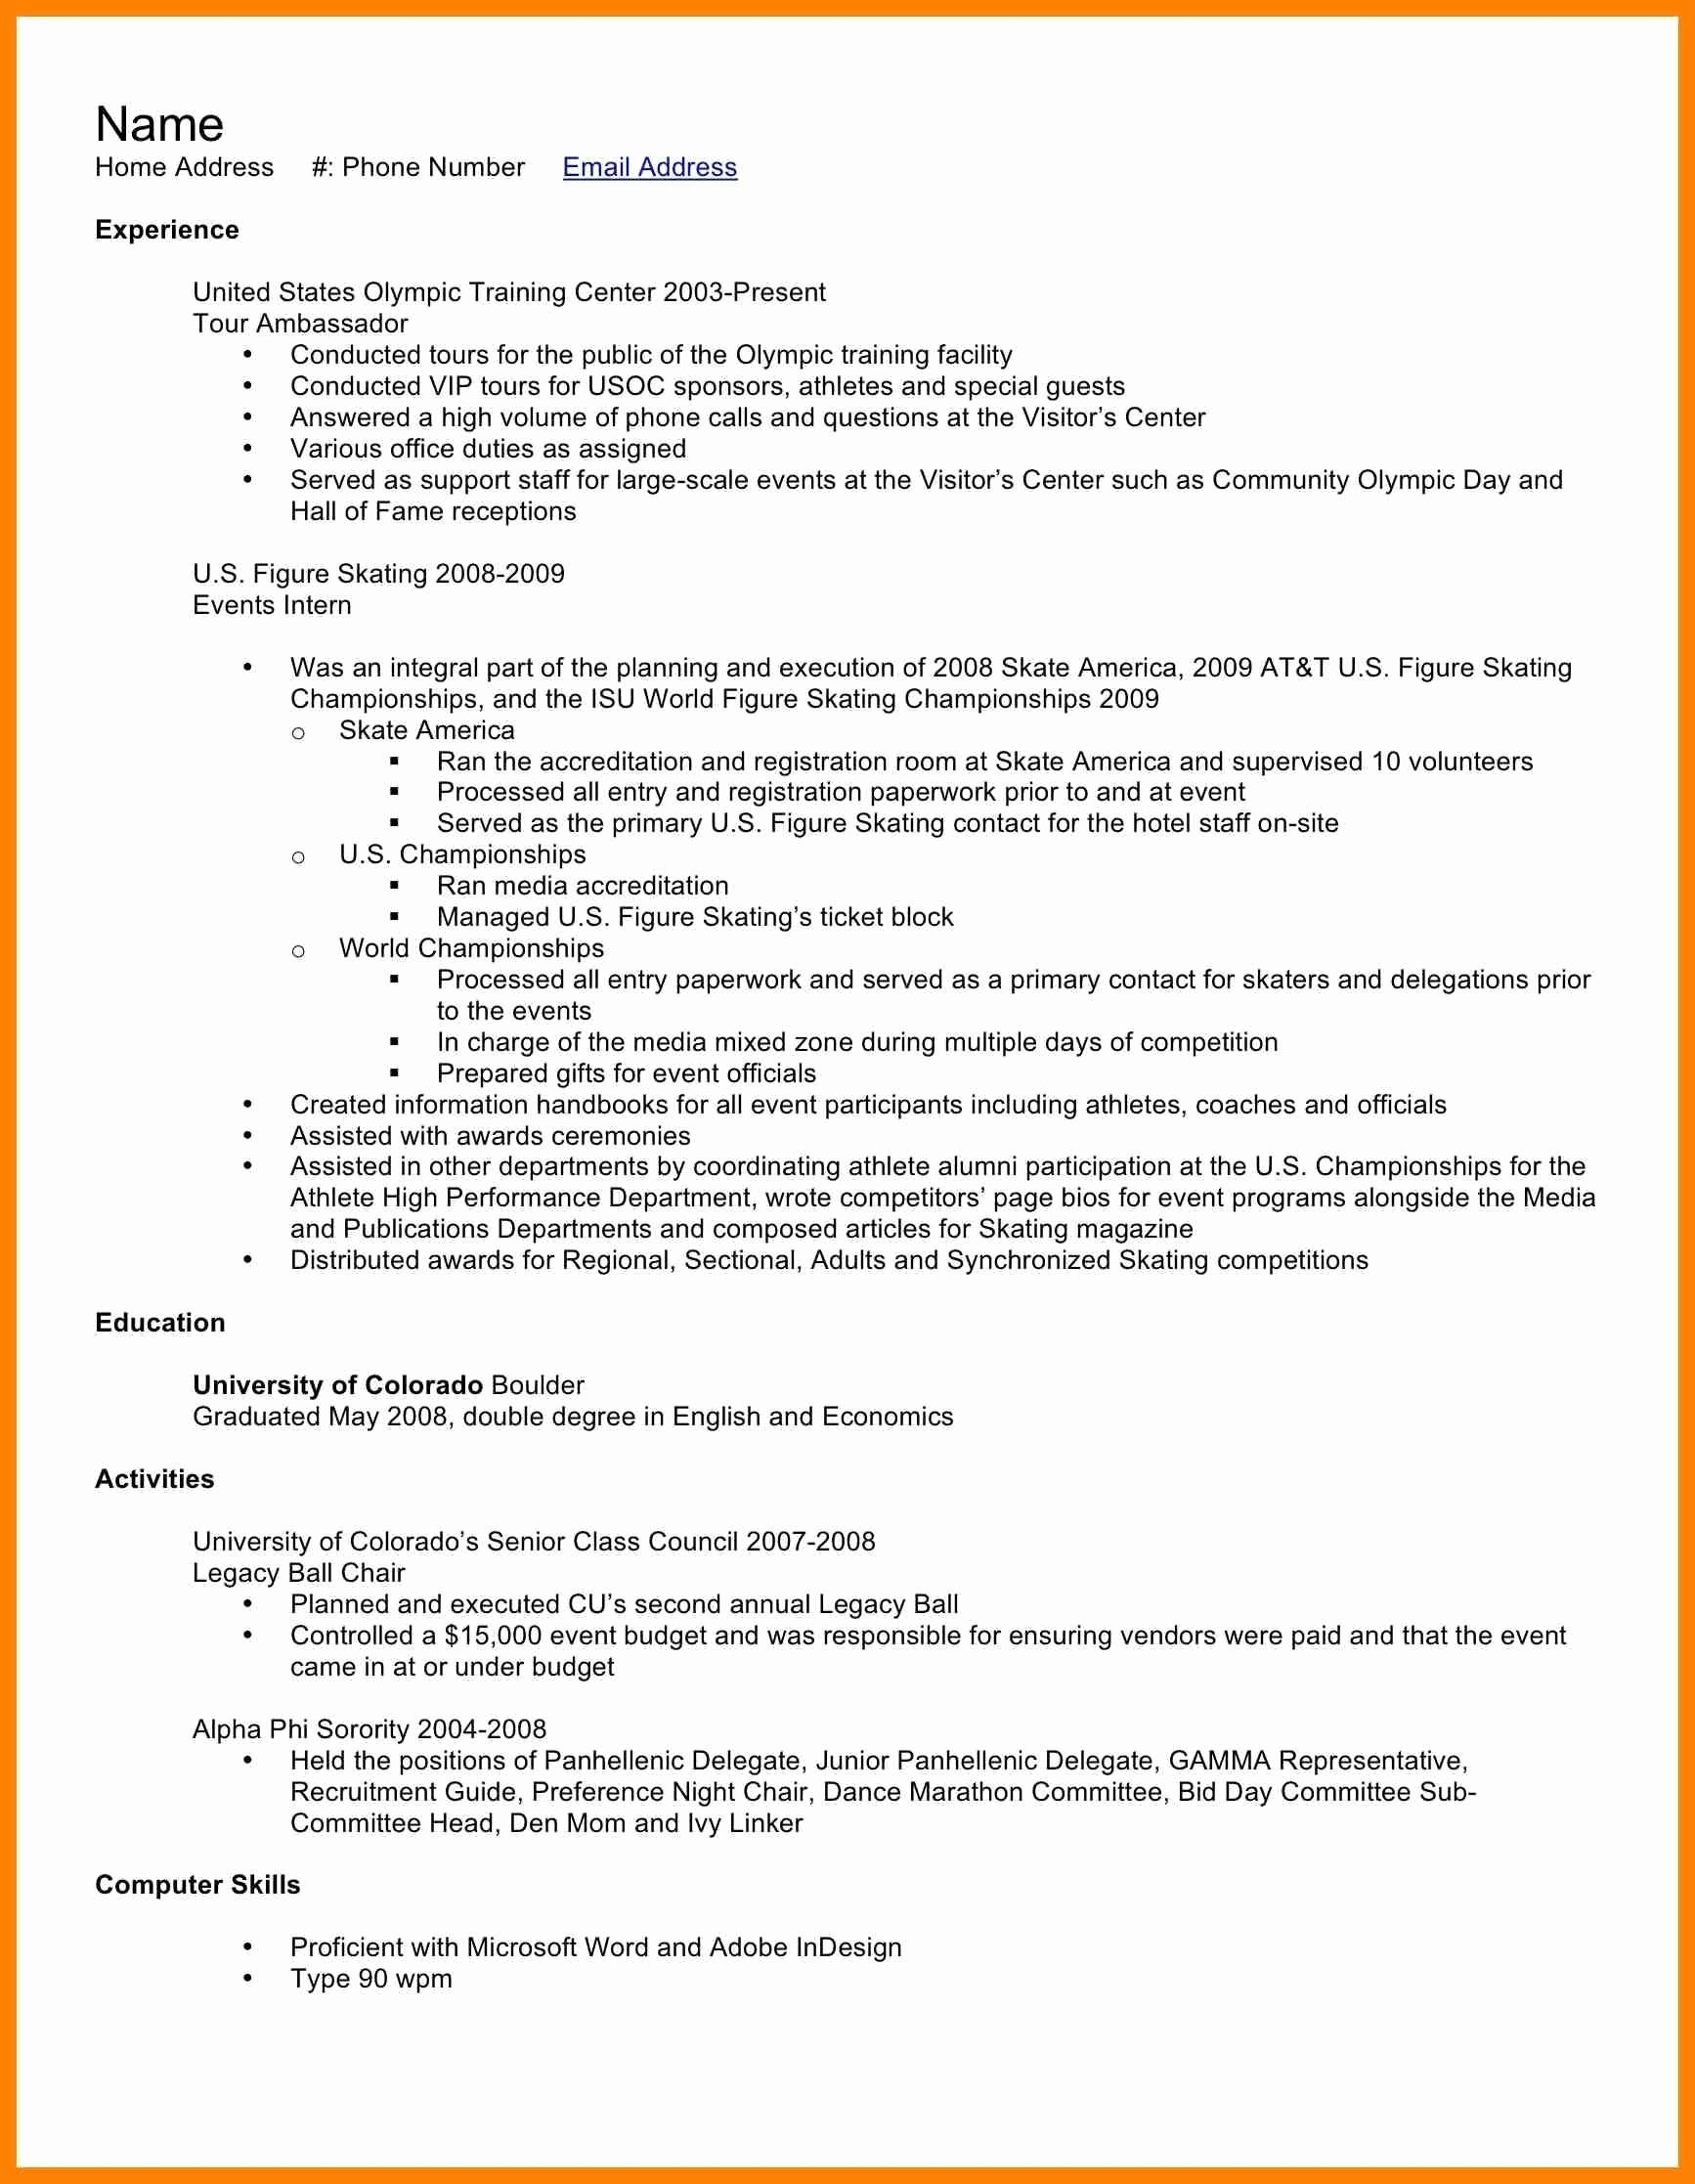 Resume Cover Letter Entry Level Awesome Support Clerk Cover Letter Oursearchworld